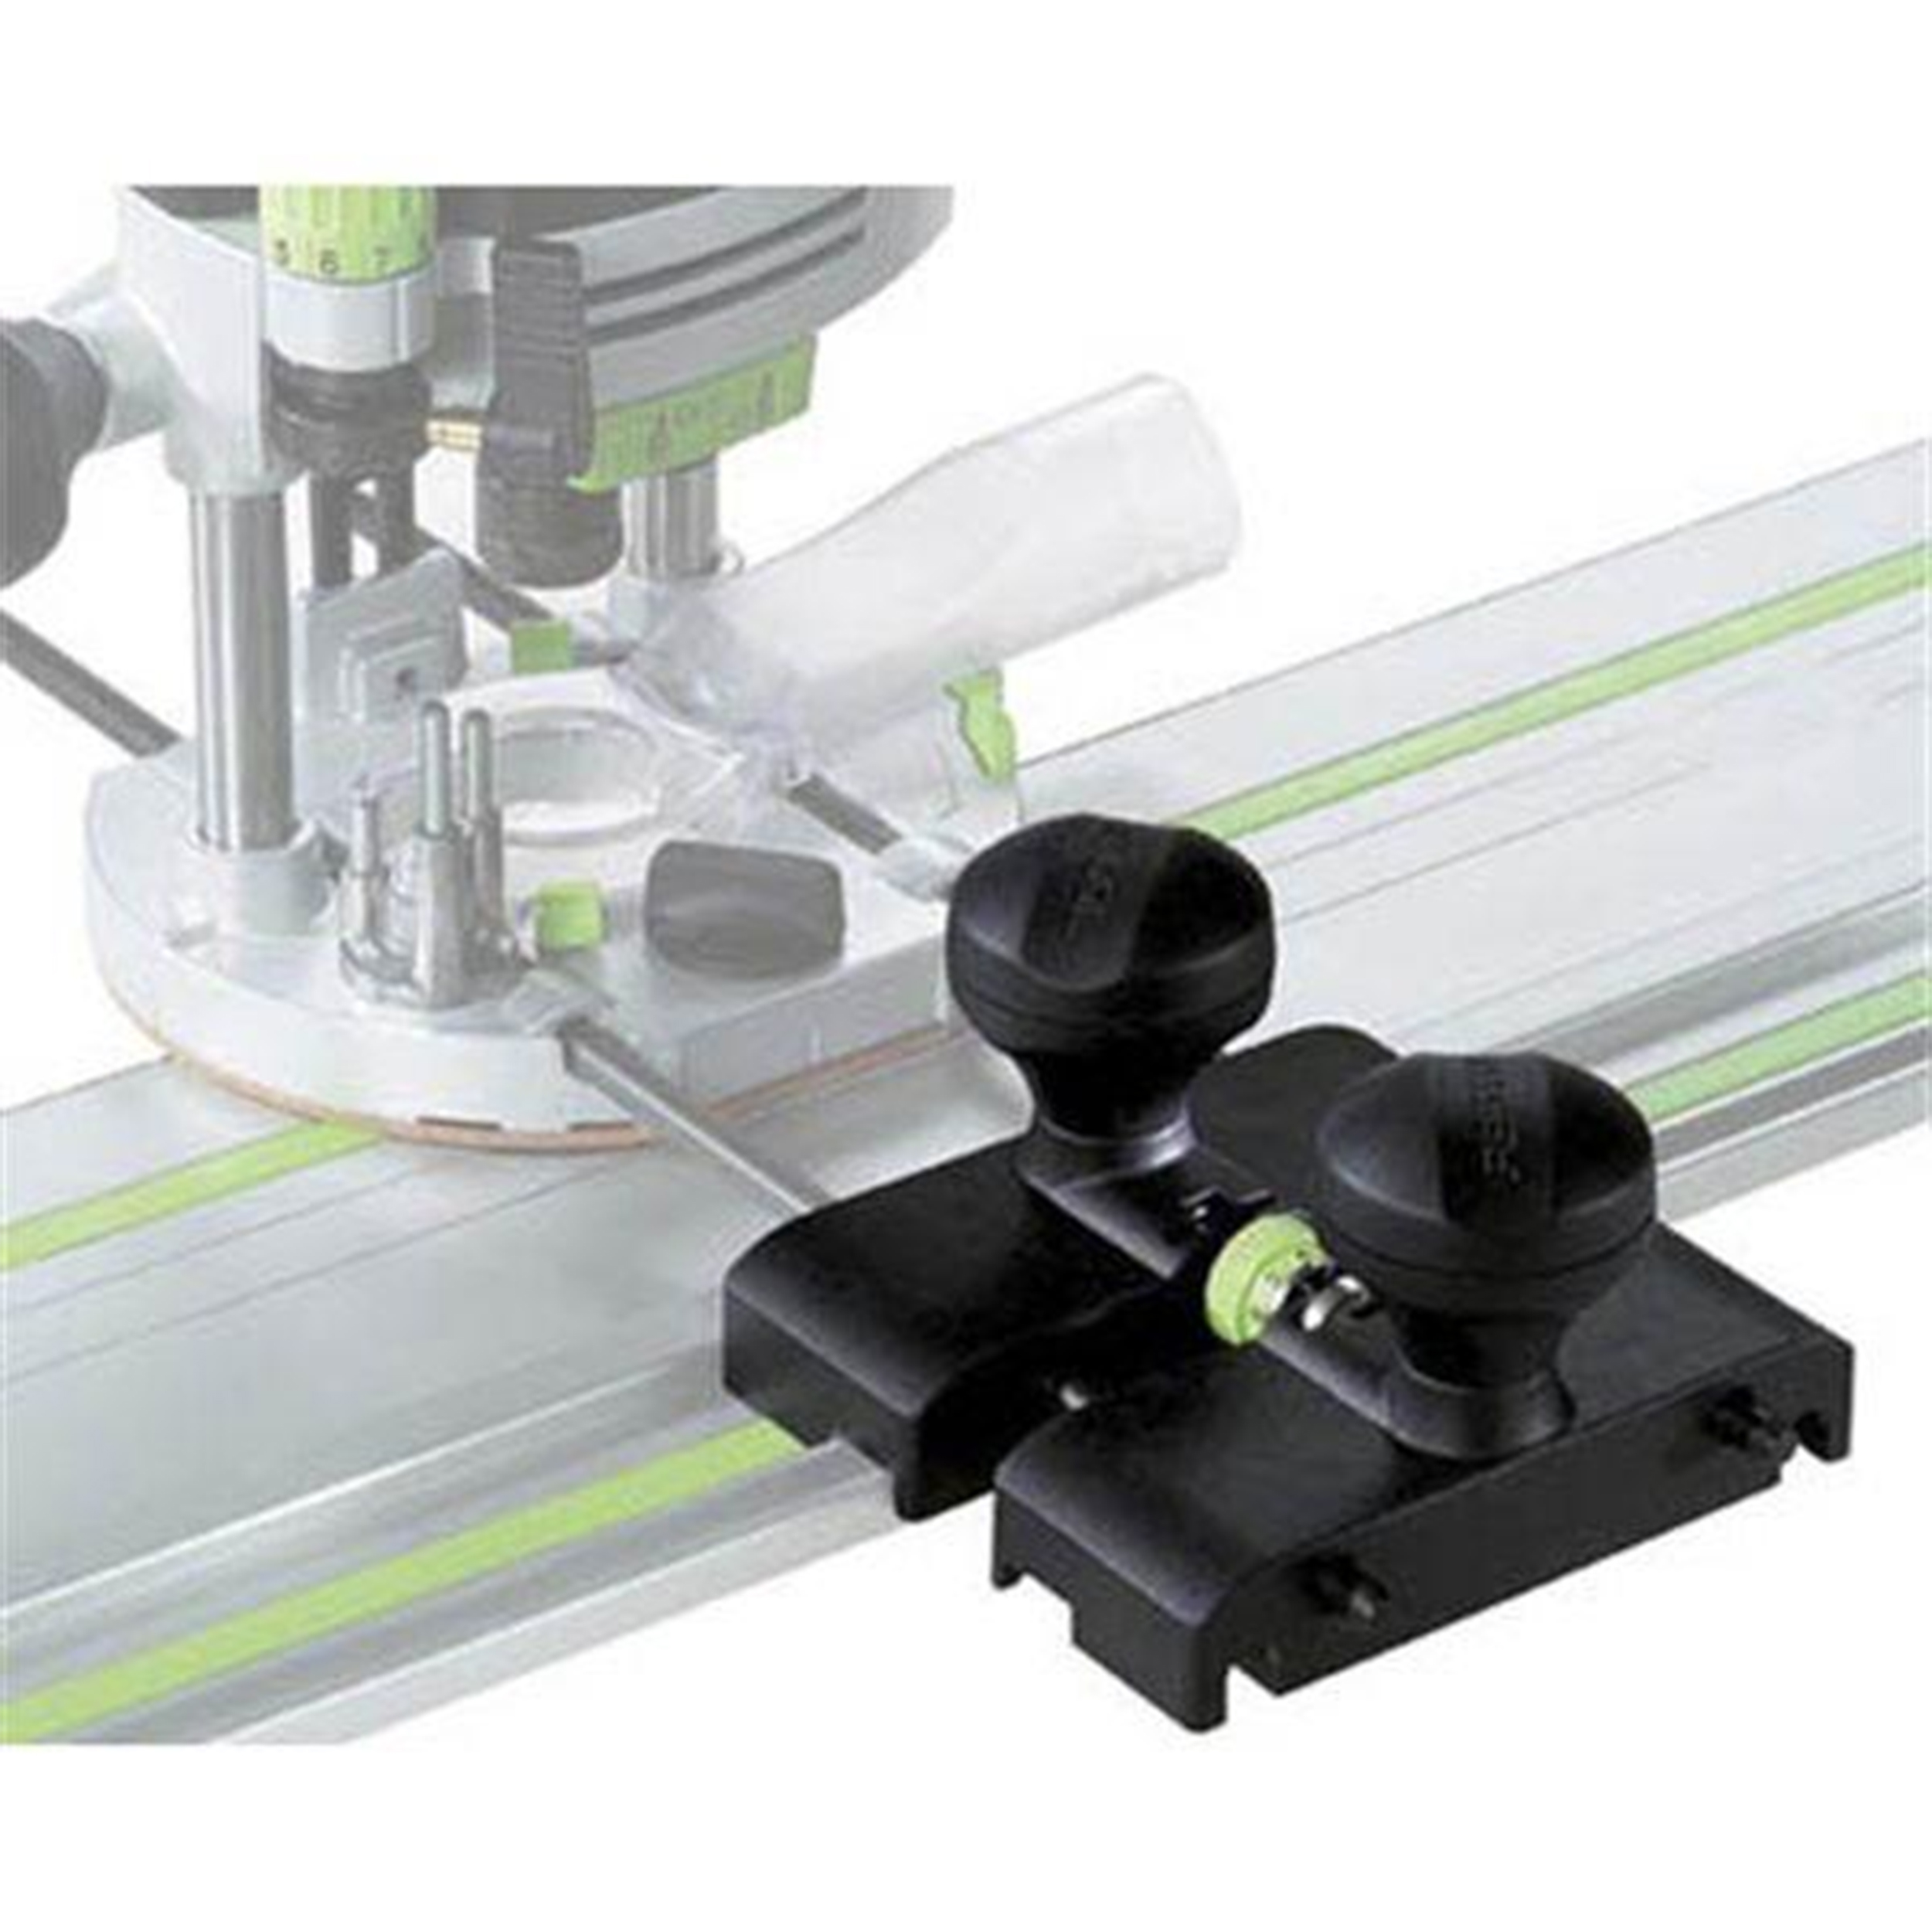 Festool Guide Stop For OF 1400 EQ 492601